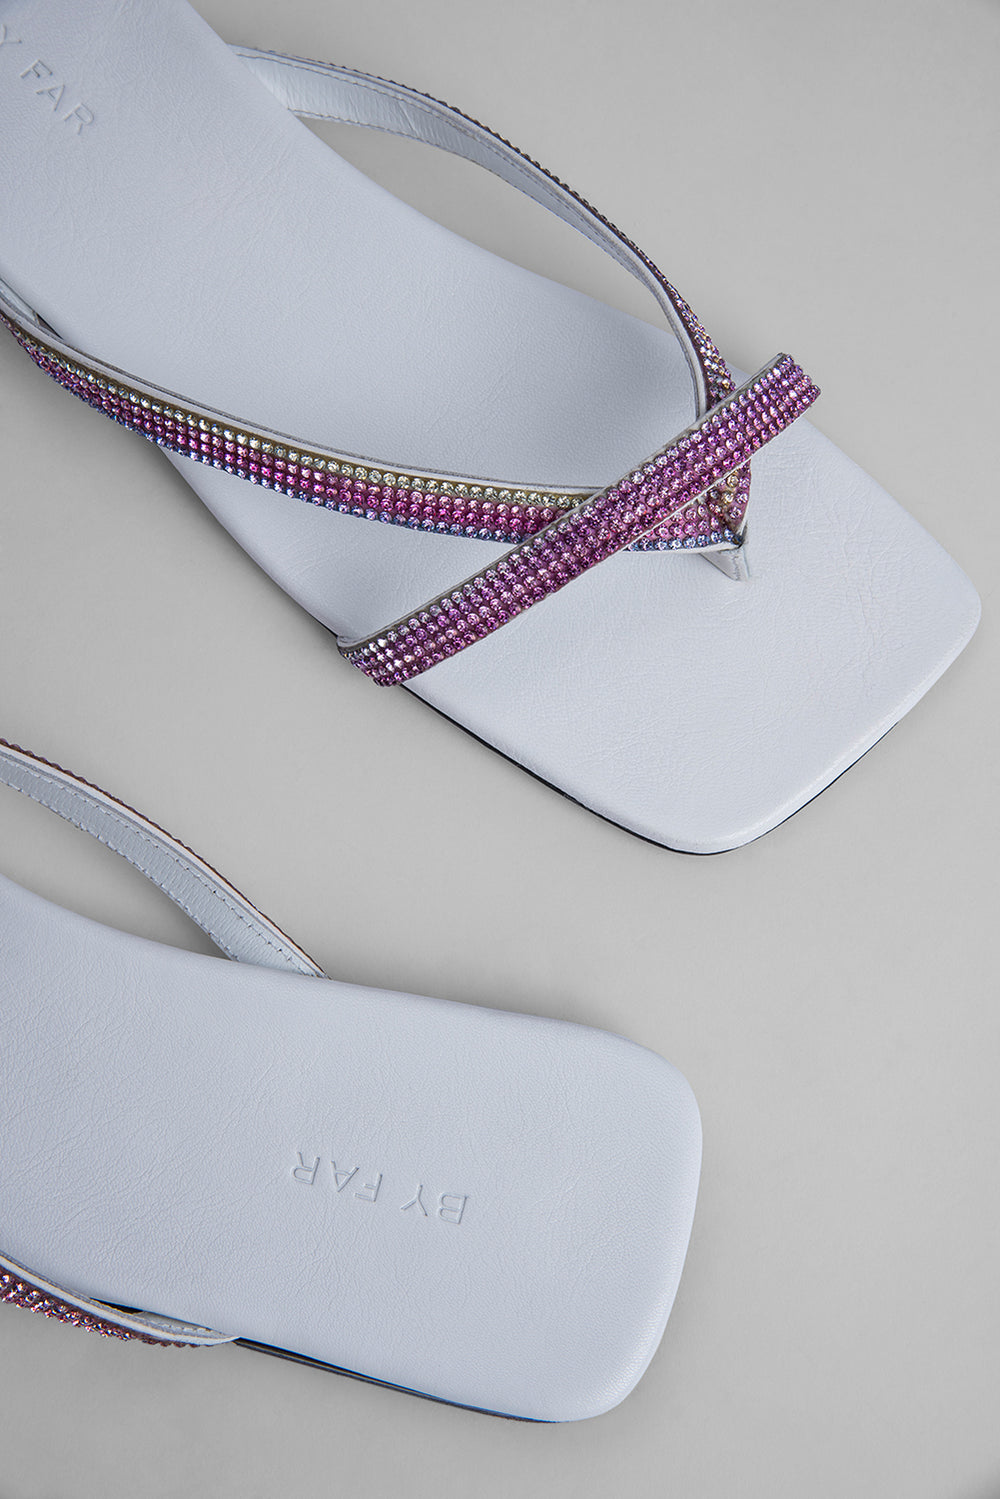 Deni White Leather and Crystals